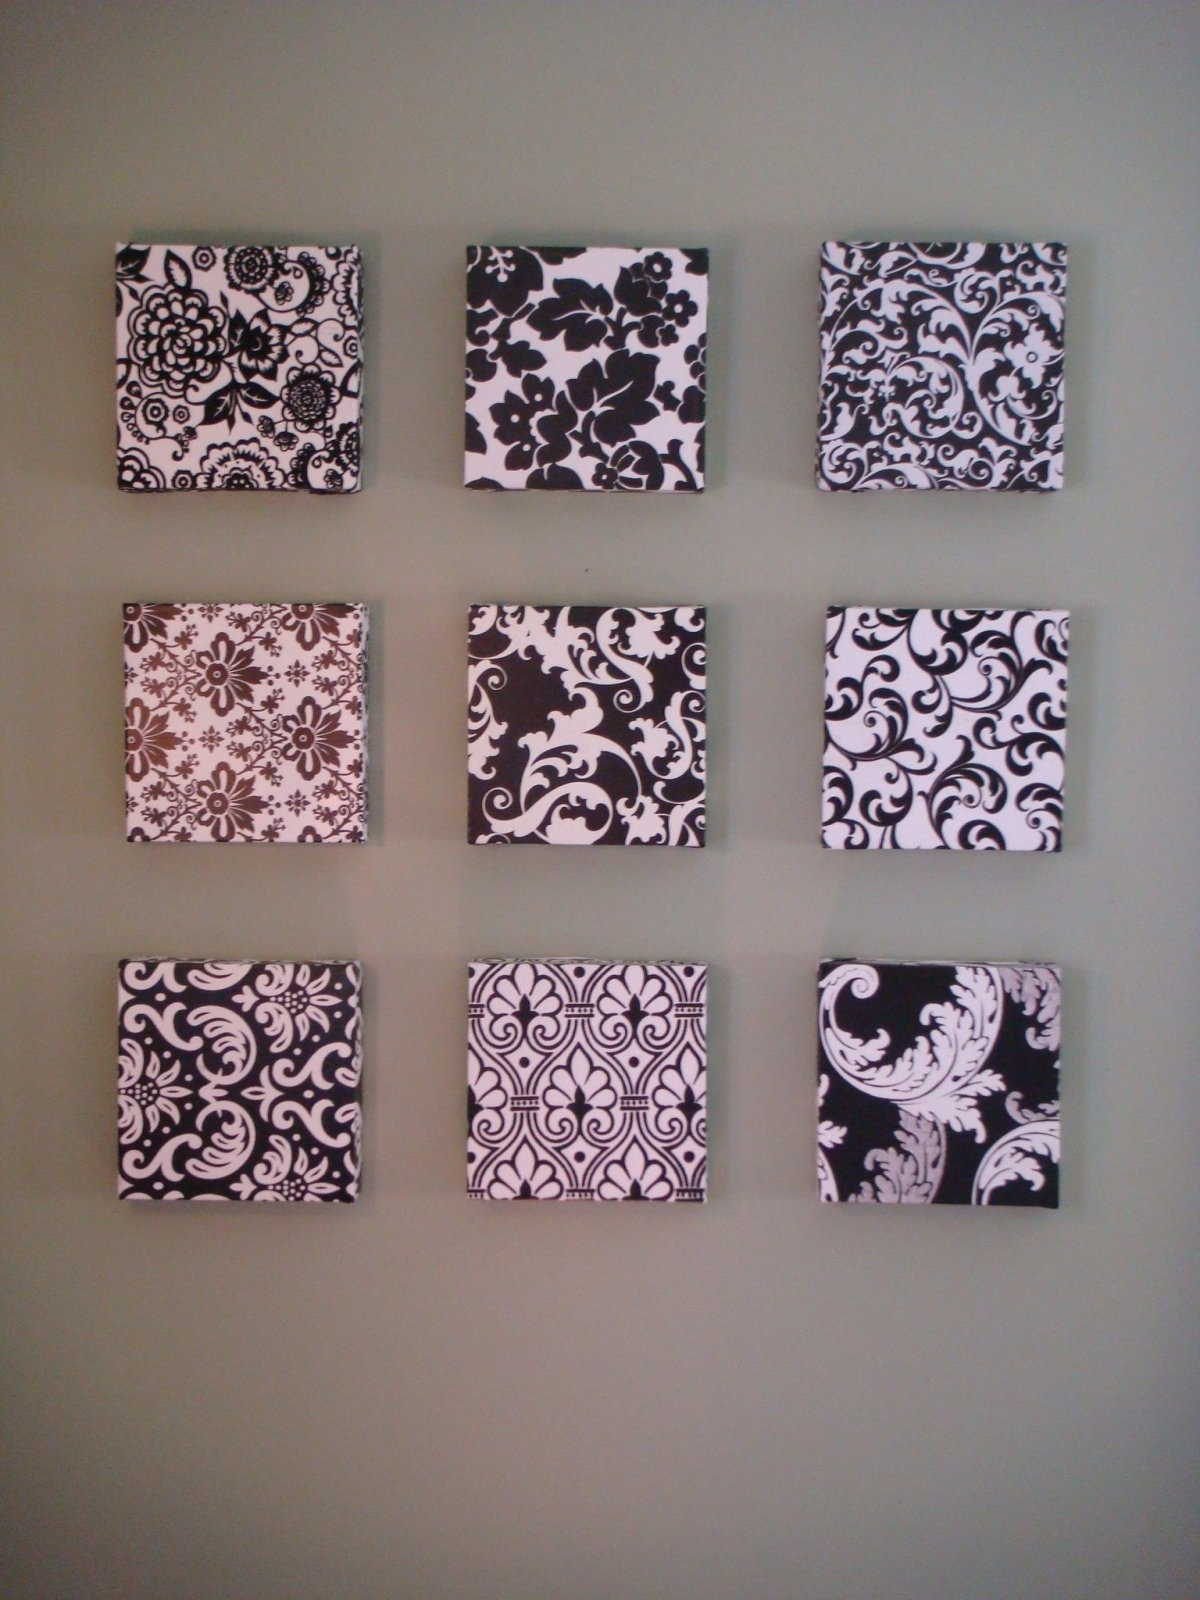 Wall Decor : White And Gold Wall Art Wall Pictures For Living Room With Regard To Newest Black And White Fabric Wall Art (View 15 of 15)